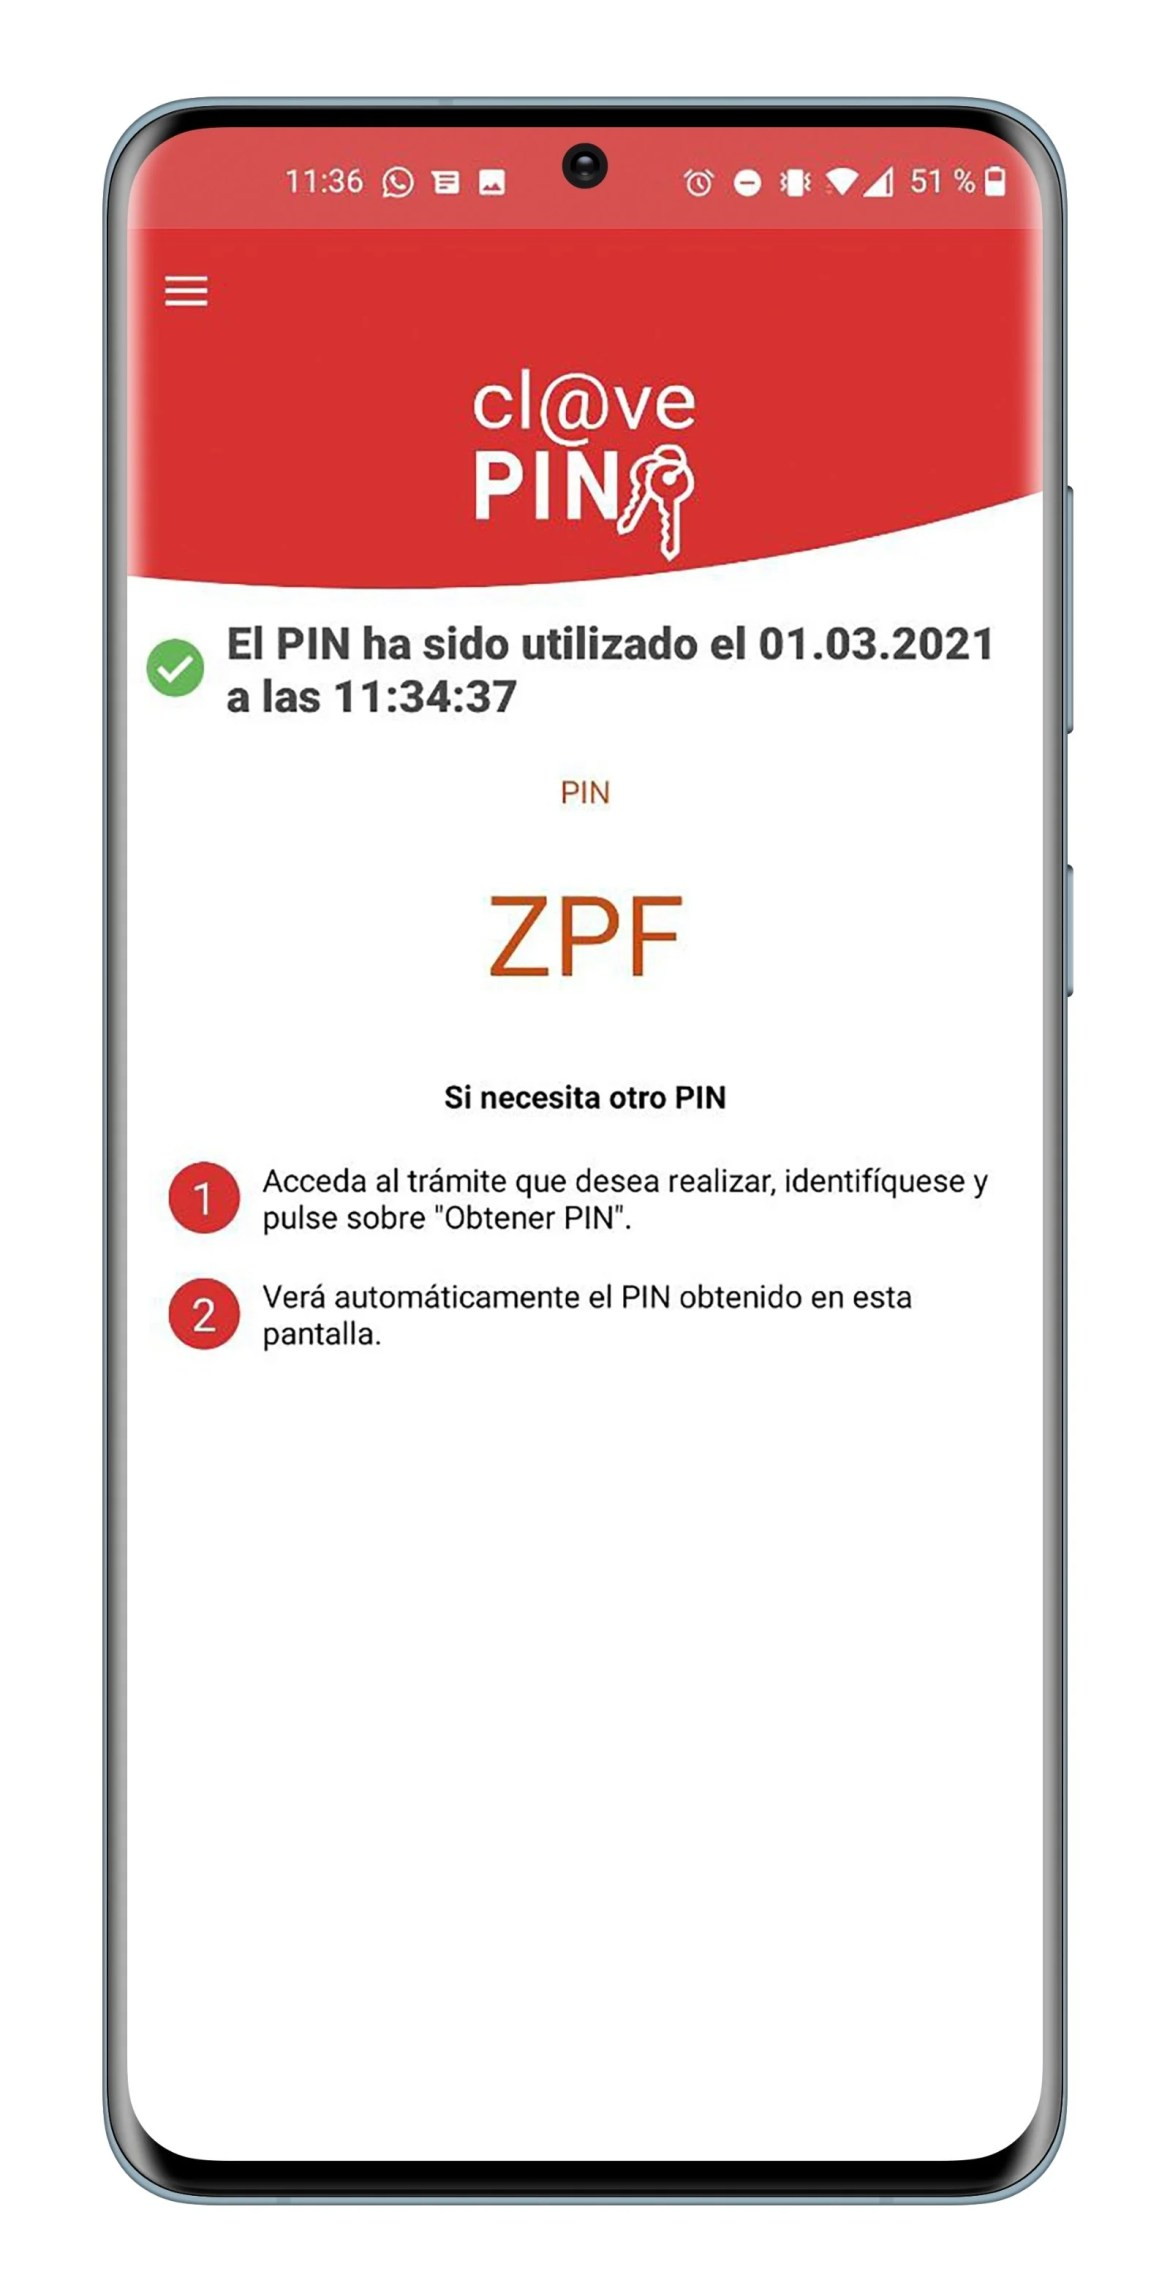 Clave PIN en Android